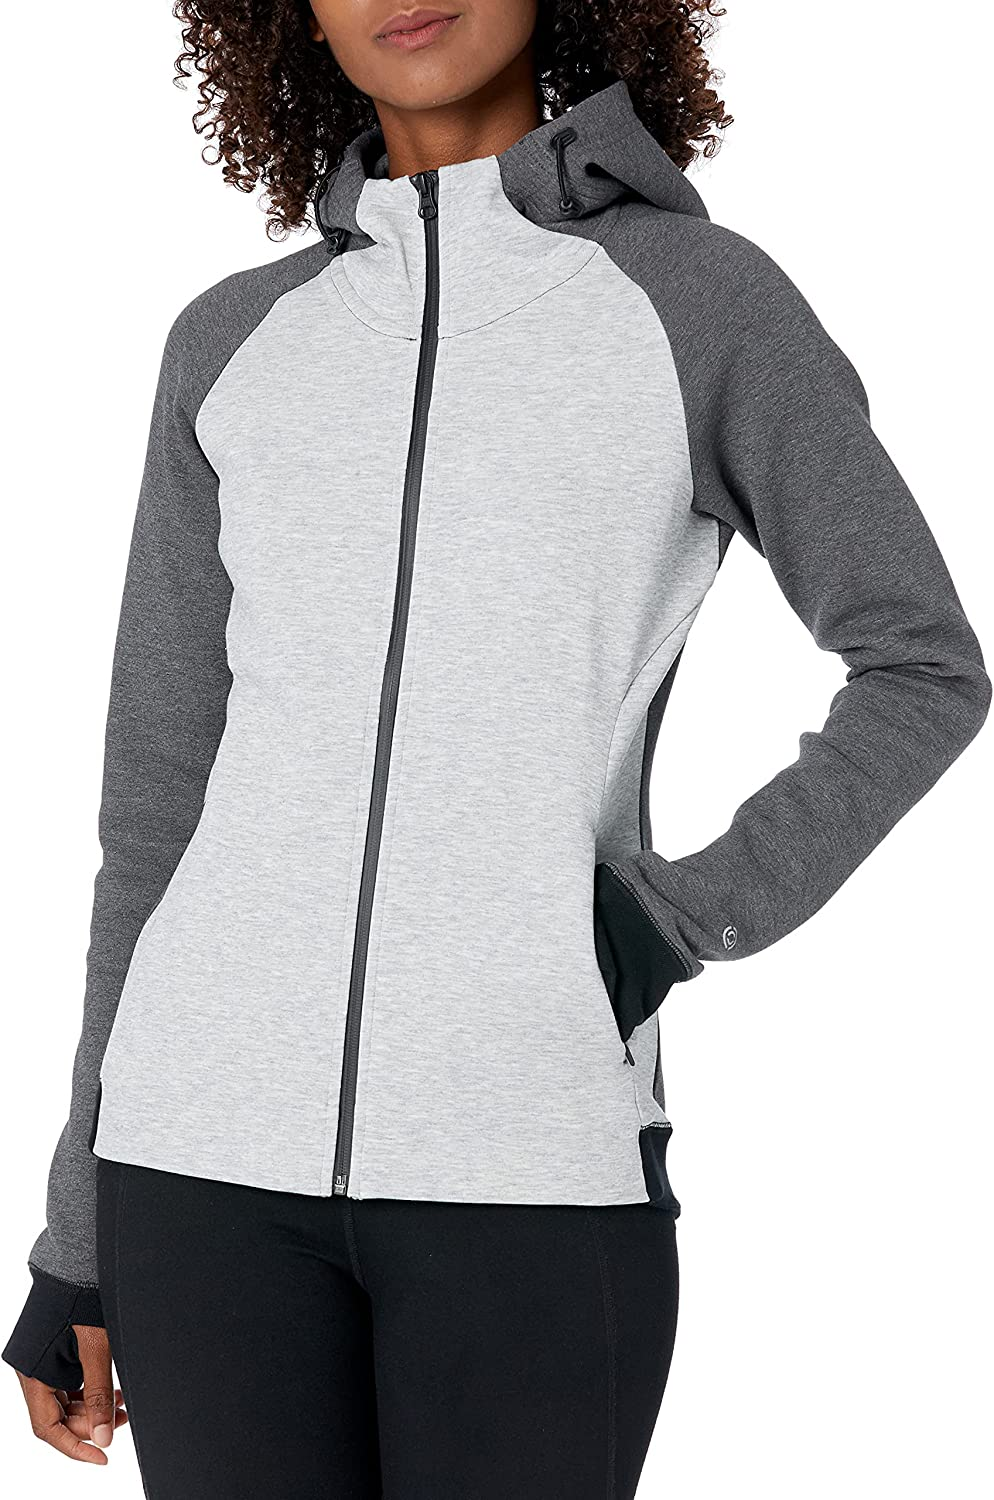 Core 10 Women's Motion Tech Fees free!! Jacket Baltimore Mall Fitted Fleece Full-Zip Hoodie